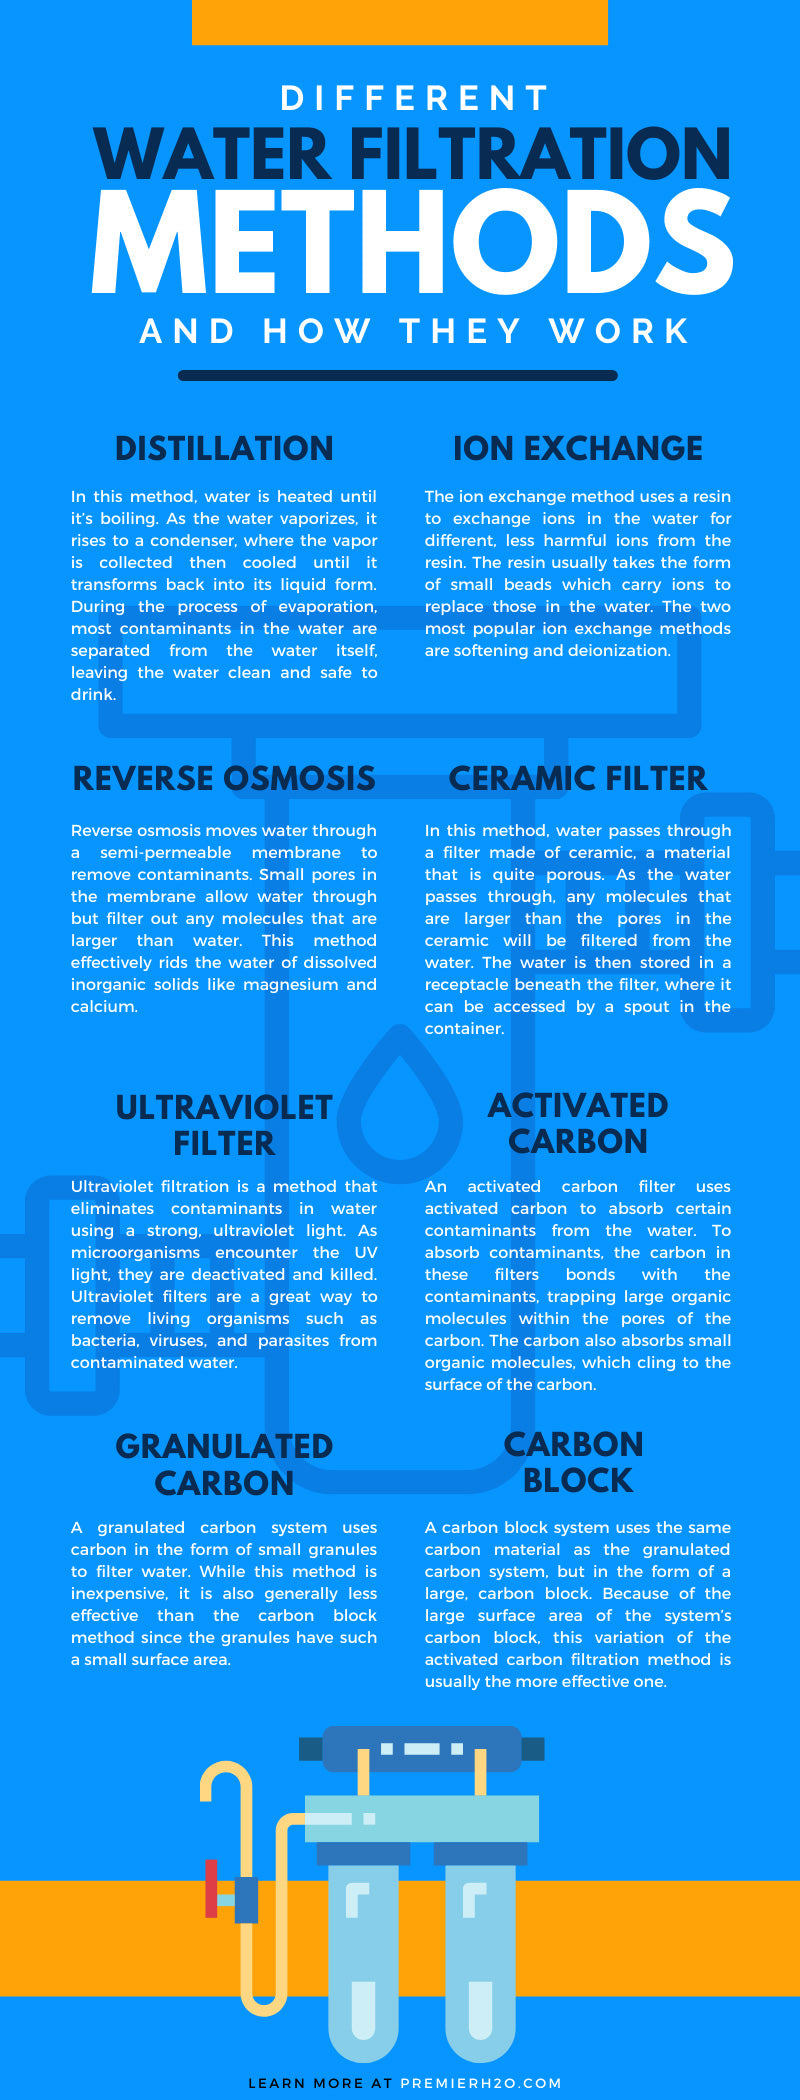 Different Water Filtration Methods and How They Work